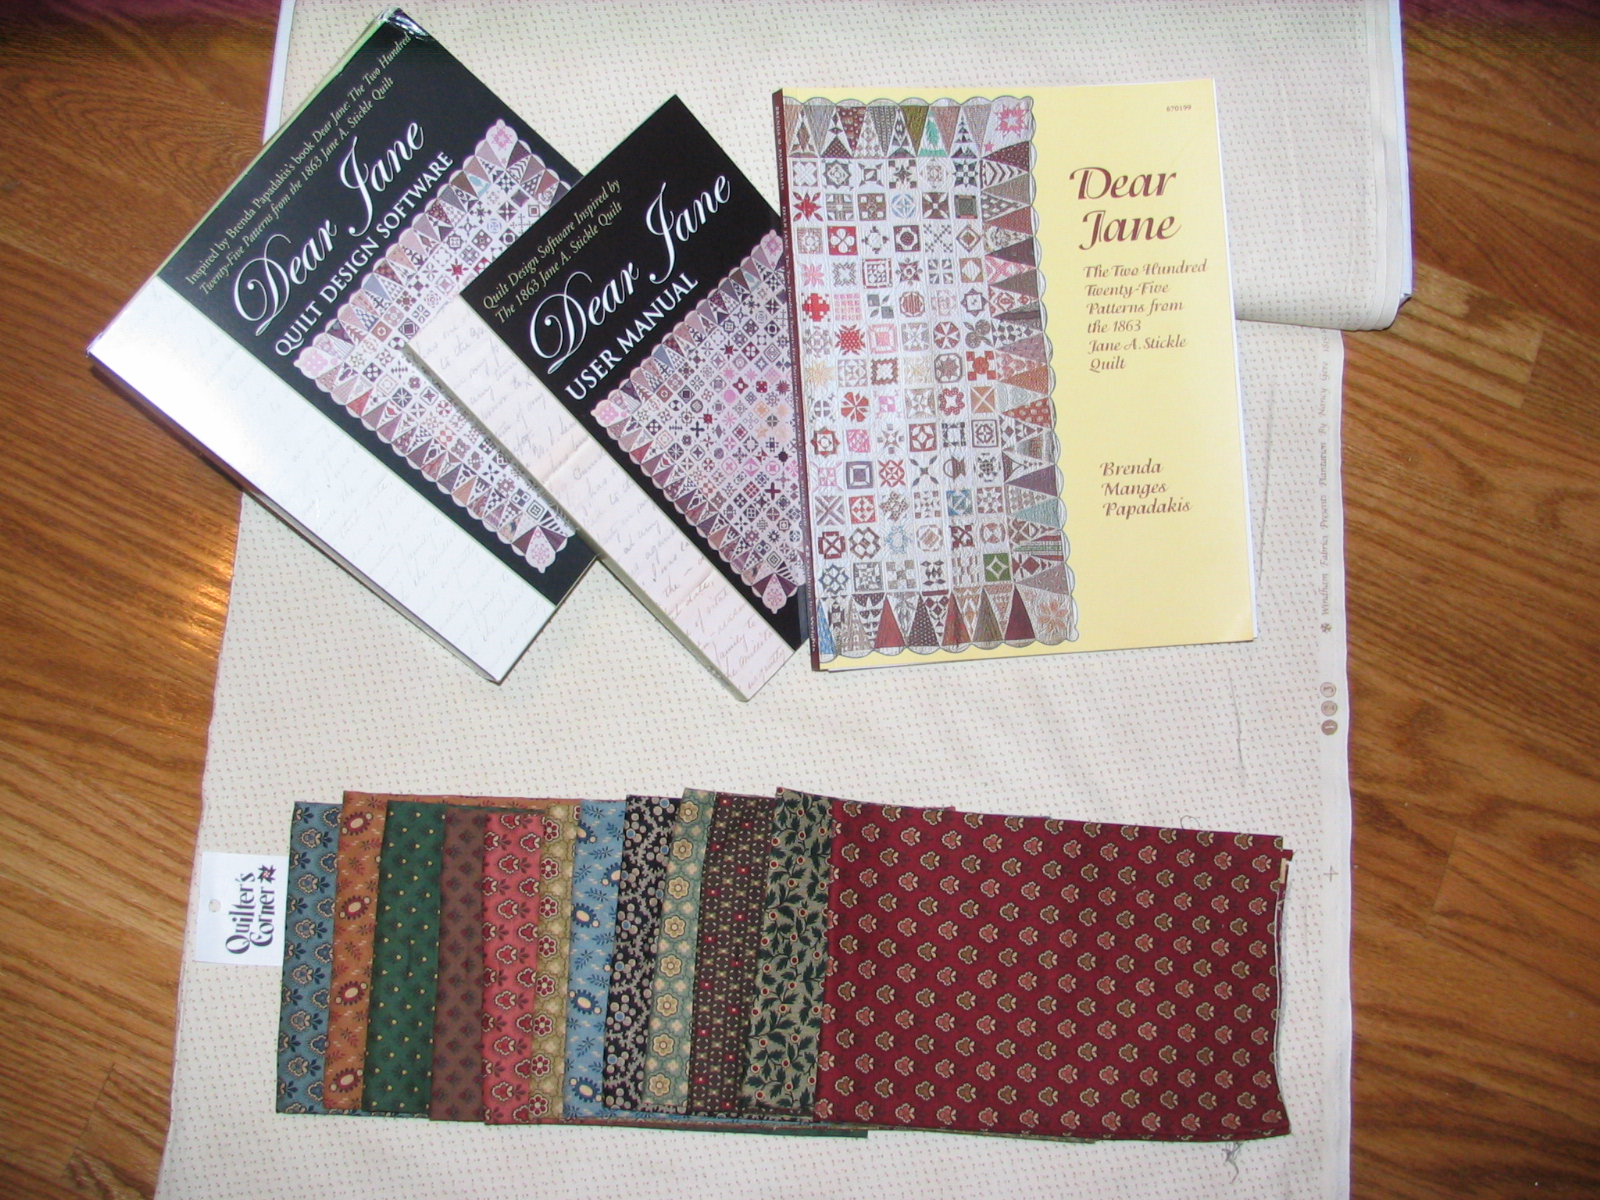 the dear jane civil war quilt